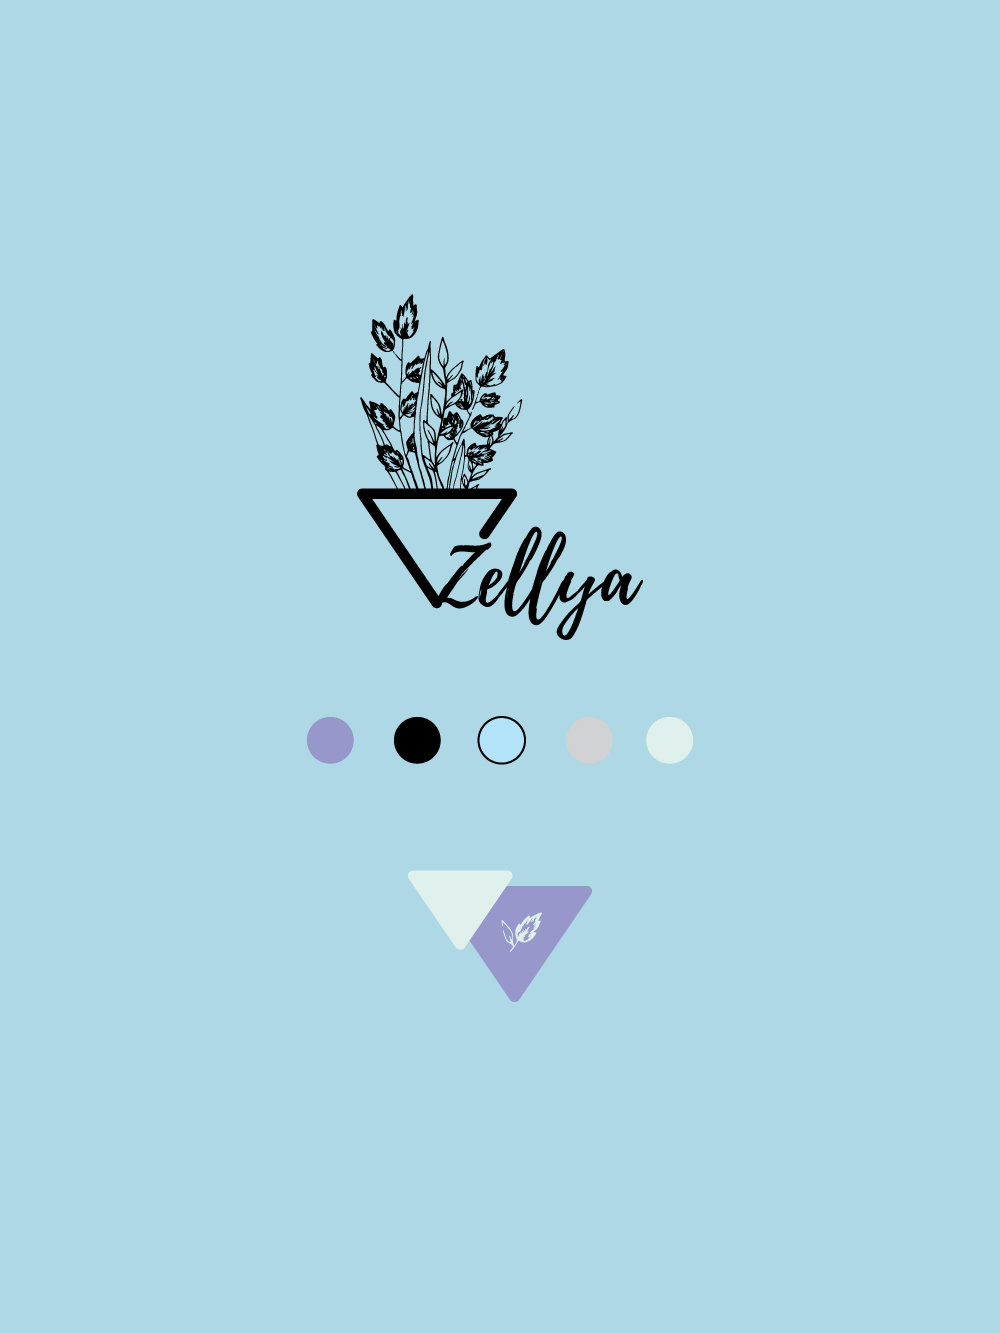 Branding project for an embroidery business named    Zellya Designs   .   Delicate & sophisticated craft requires branded visuals that support its values and creates true connection with the right tribe.    WORK DONE:  Logo | Alternatives | Color palette | Patterns for Social Media